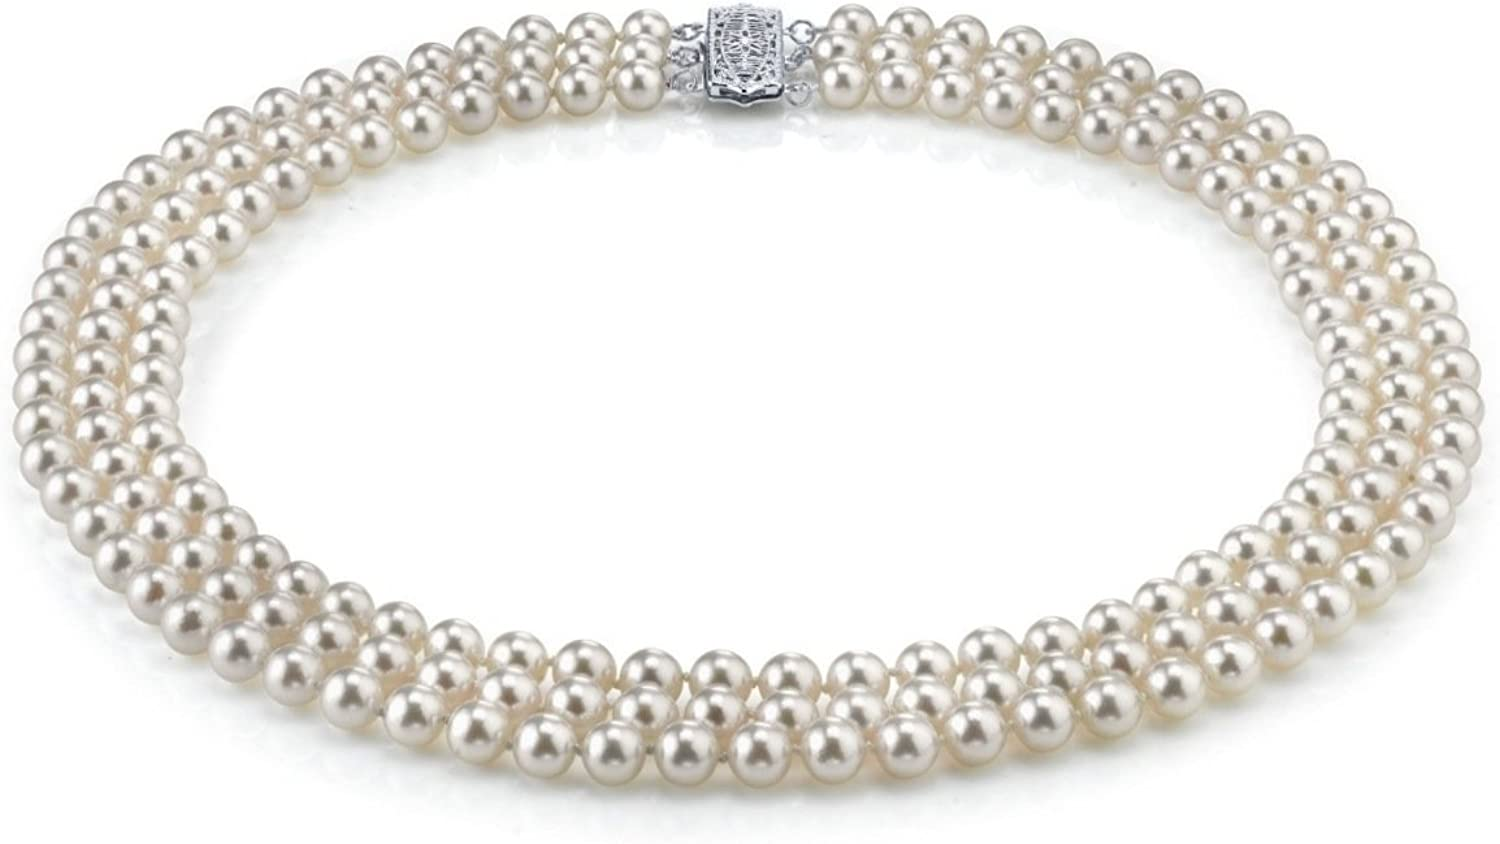 THE PEARL SOURCE 14K Gold 7-8mm AAA Quality Triple Strand White Freshwater Cultured Pearl Necklace for Women in 17-19